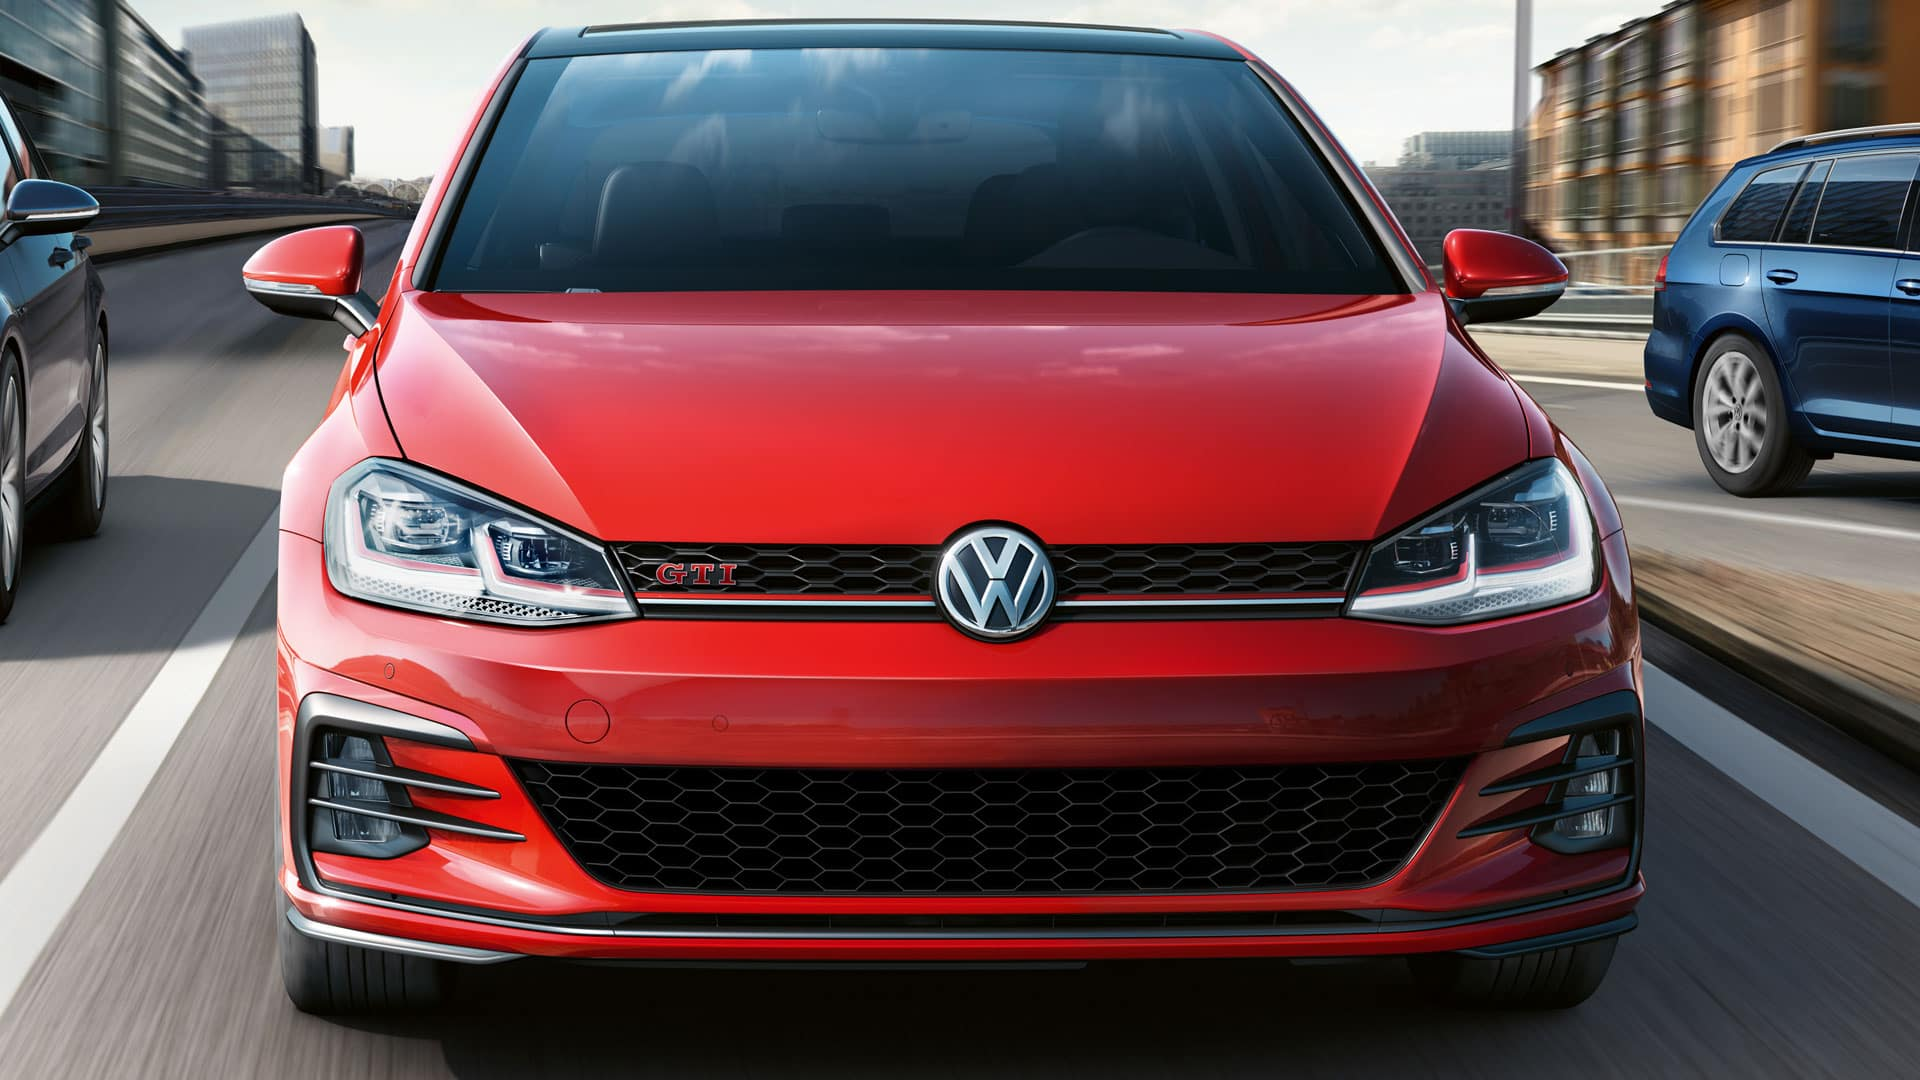 Red 2019 VW Golf GTI showing off it's exterior styling